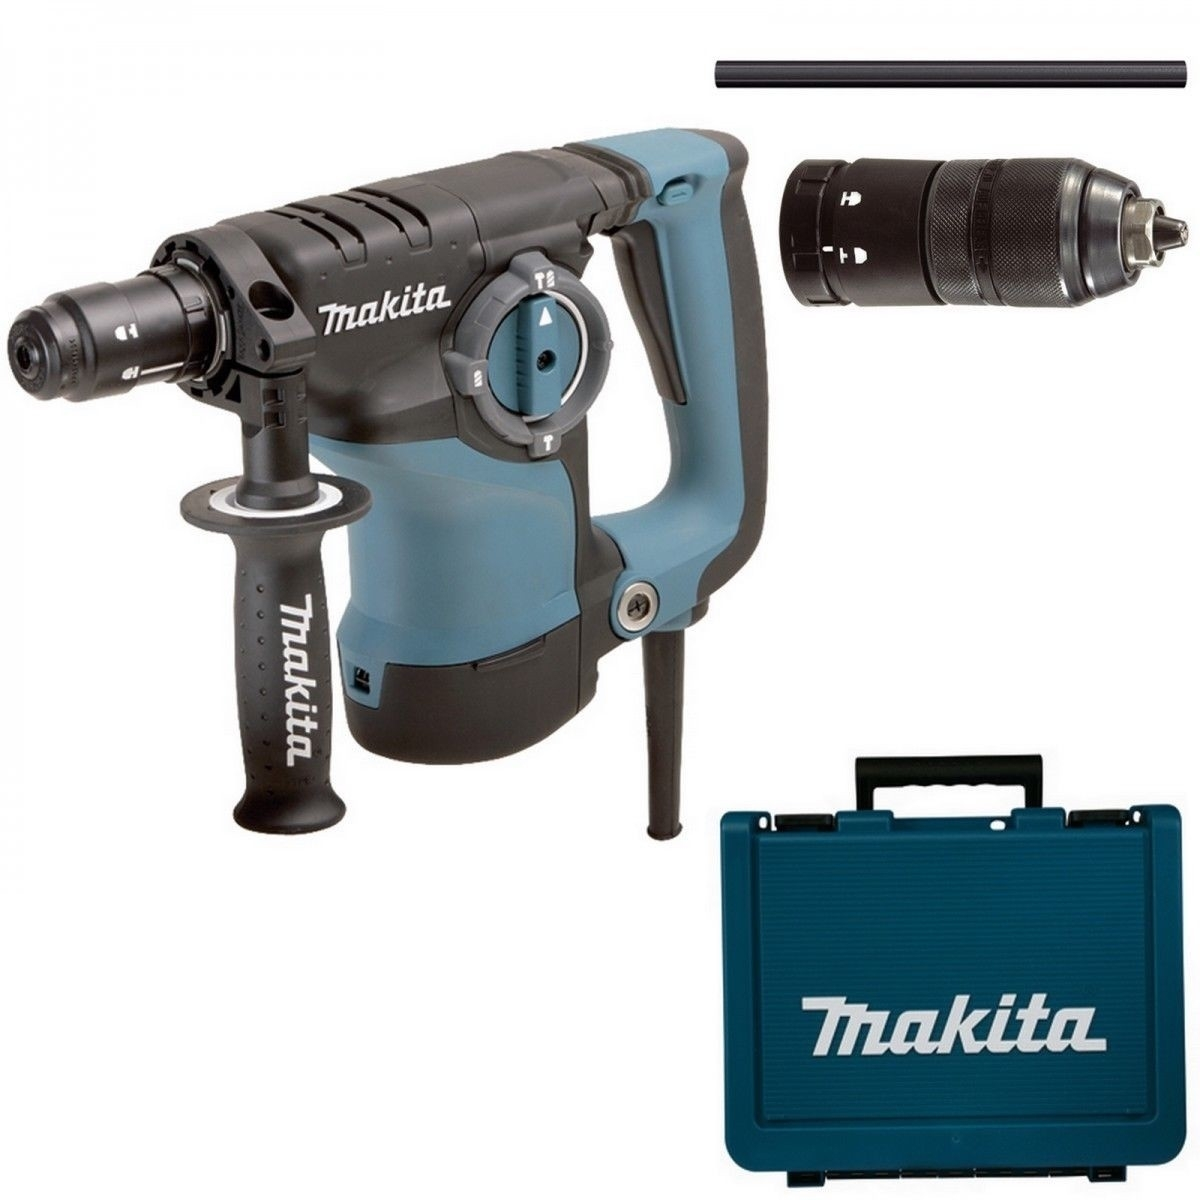 makita kombihammer hr2811ft f r sds plus wechselfutter bohrhammer von makita bei kirchner24 kaufen. Black Bedroom Furniture Sets. Home Design Ideas